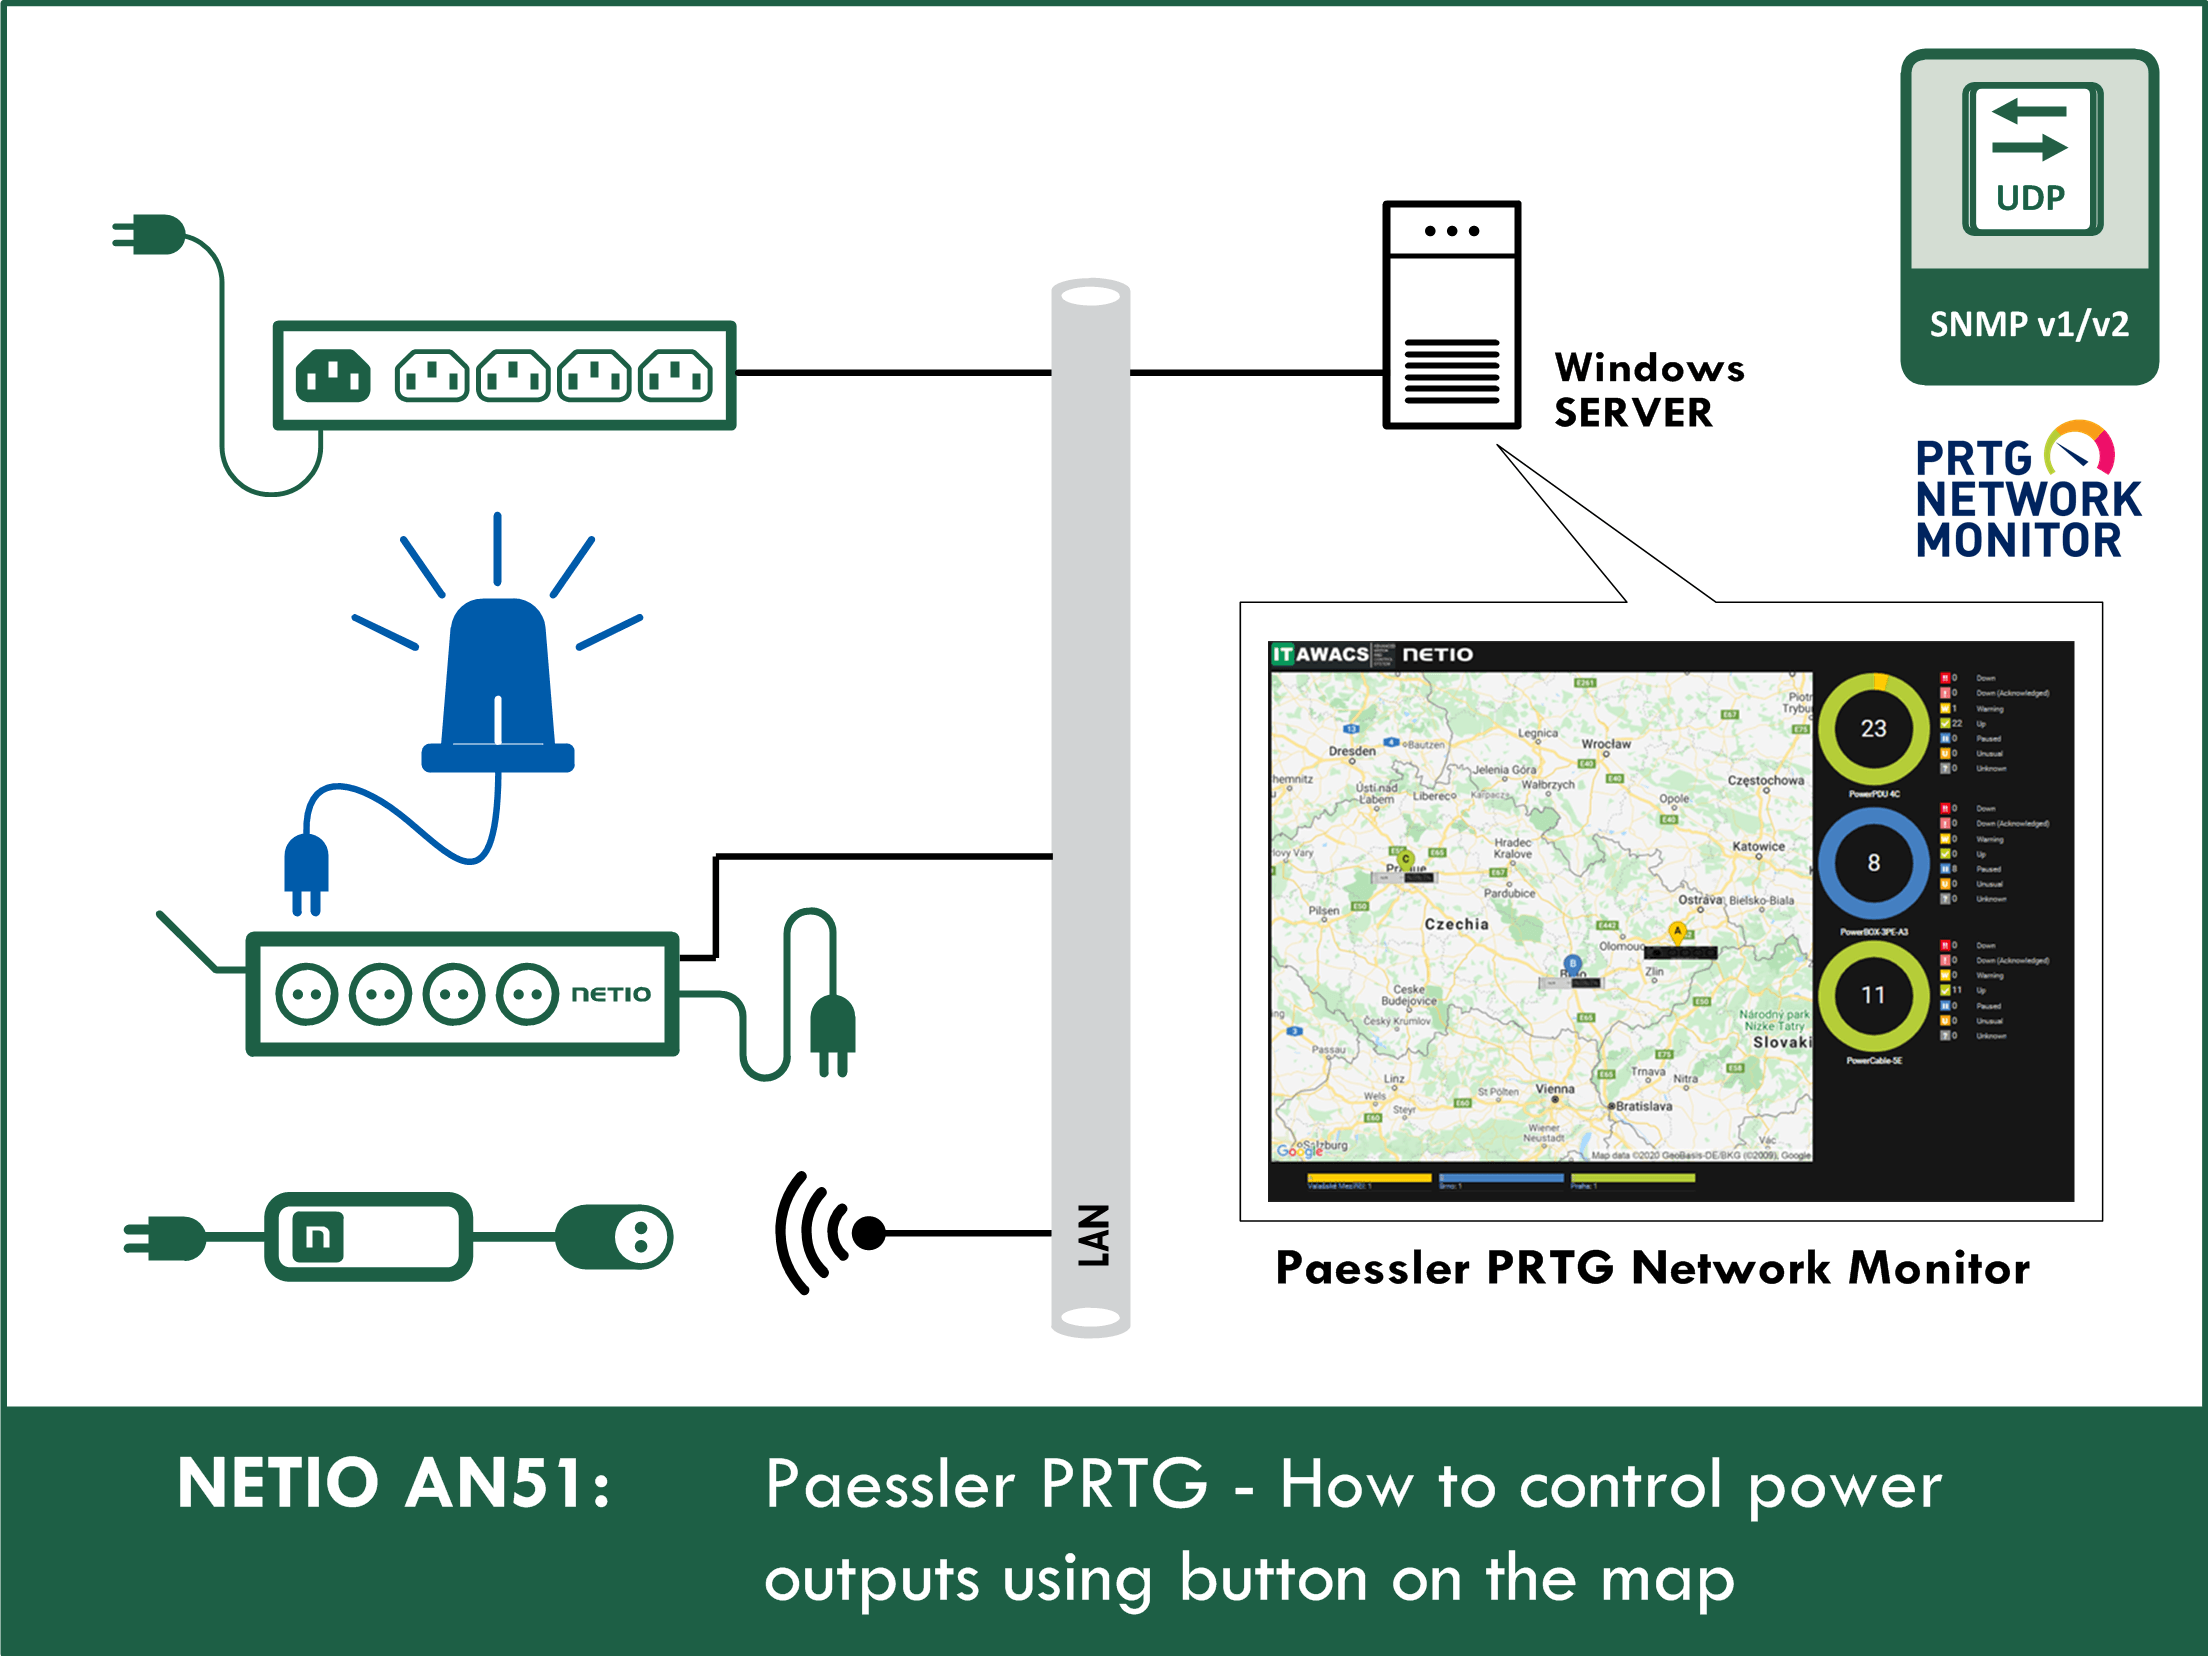 NETIO AN51 Paessler PRTG: How to control power outputs with a button on a map